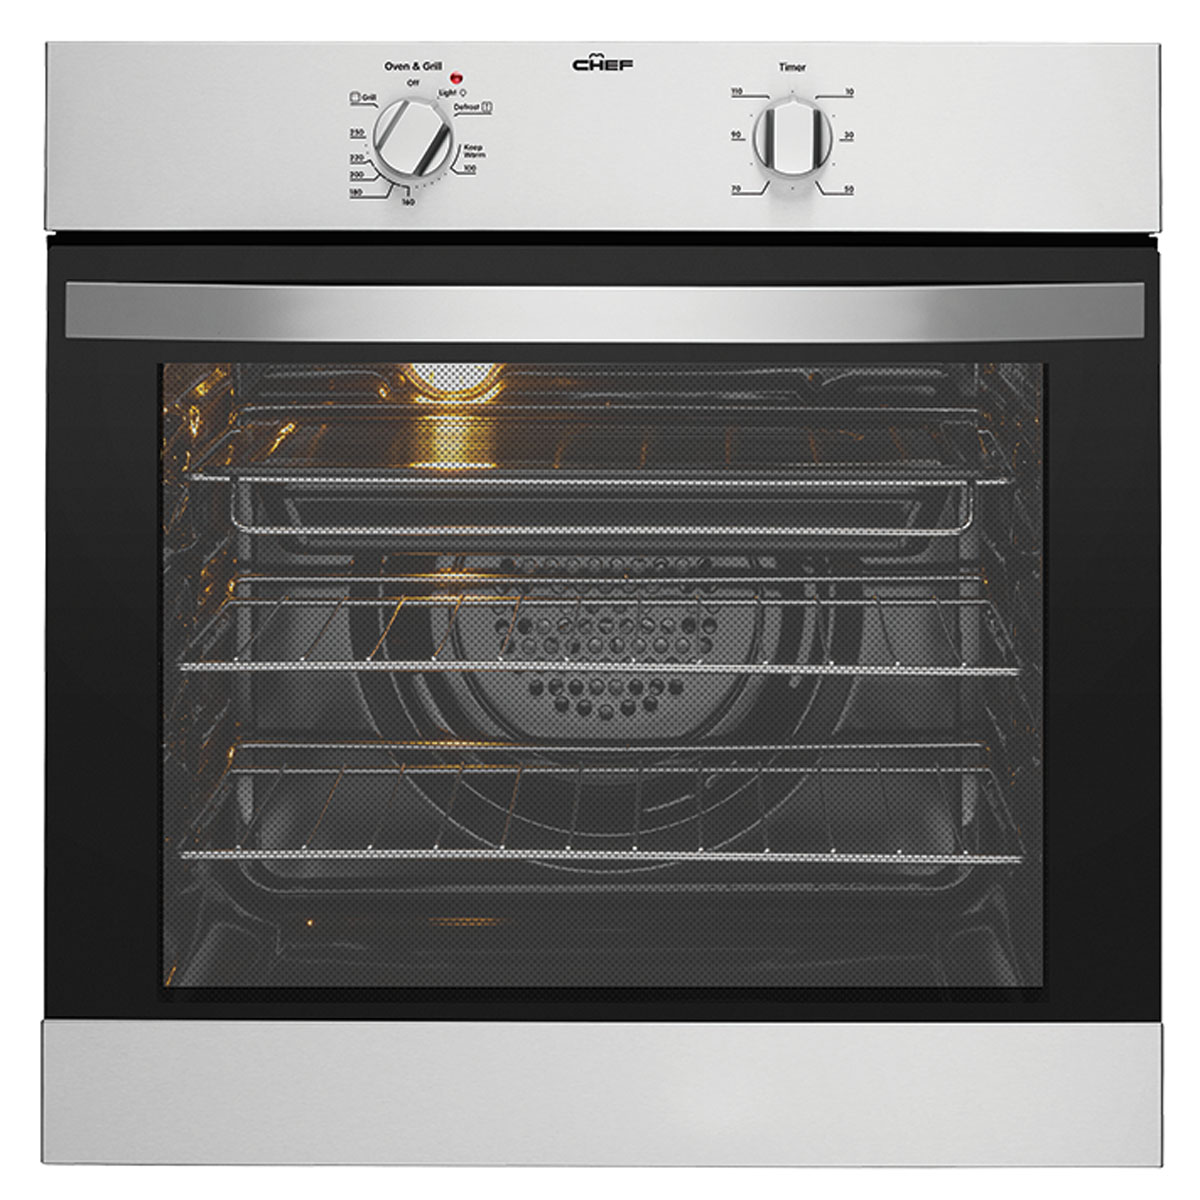 Chef CVE612SA Electric Wall Oven